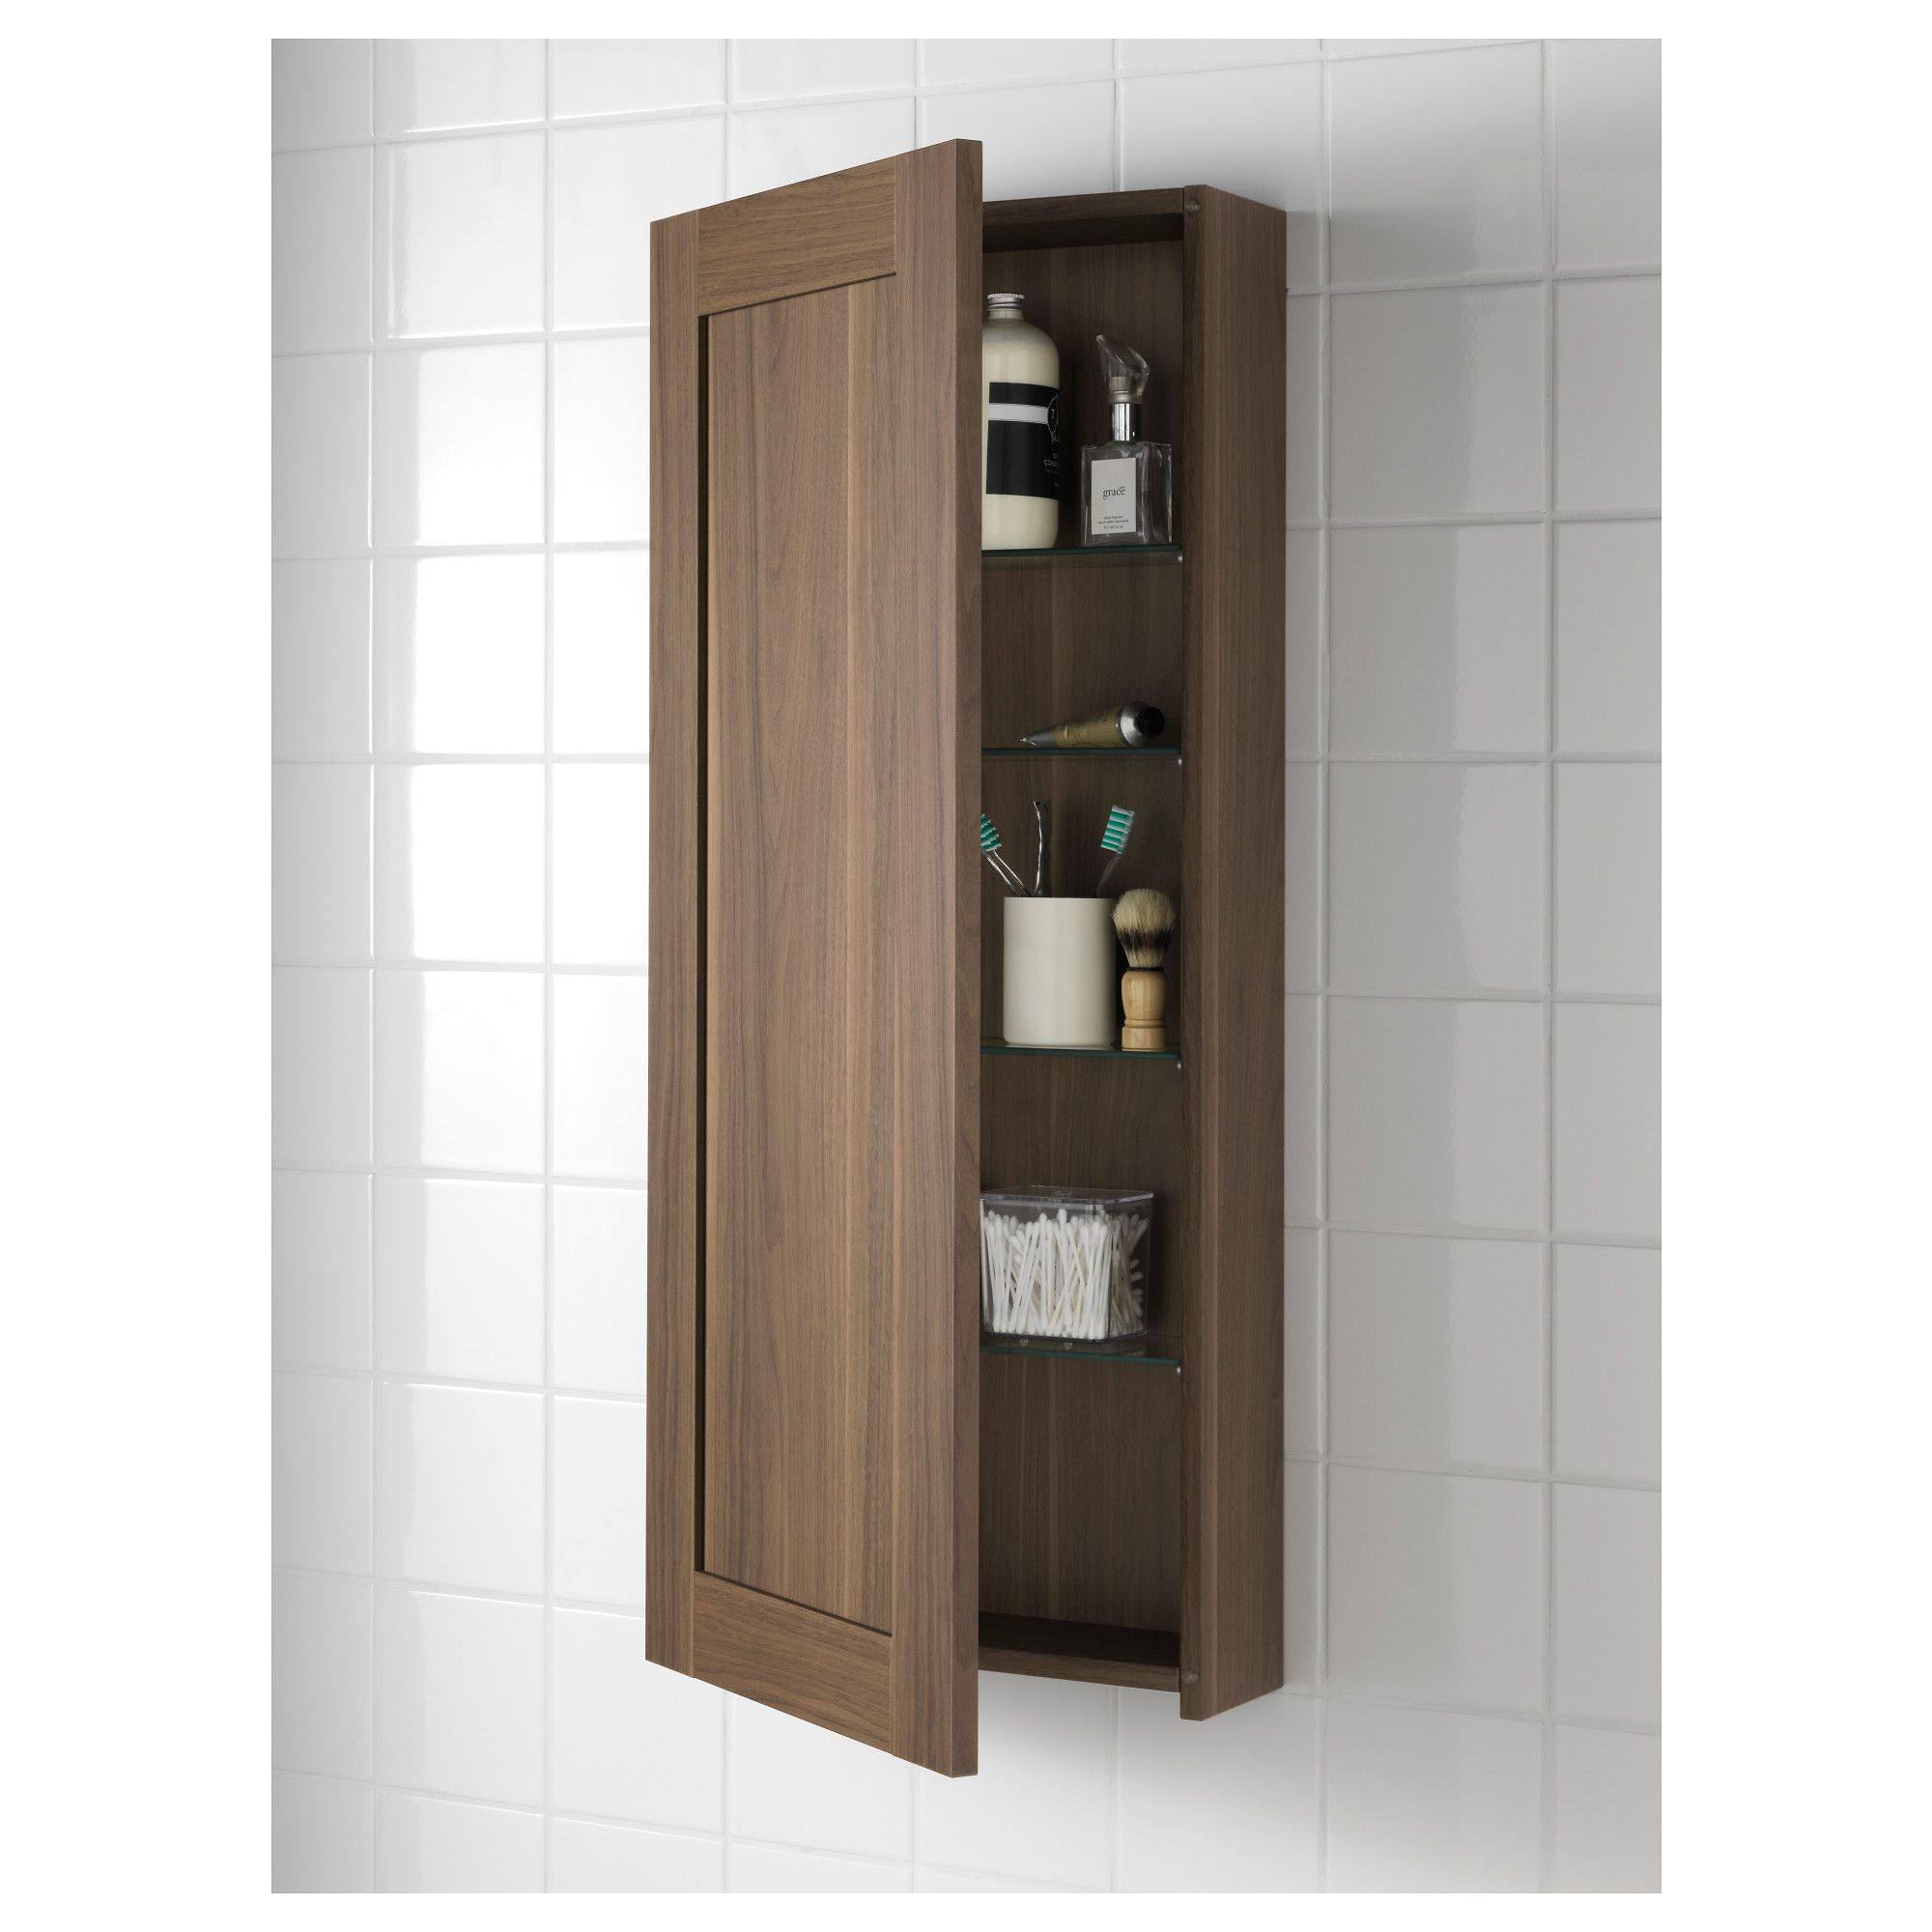 Morgon Wall Cabinet With 1 Door Walnut Effect Ikea Bathroom Vanity Cabinets